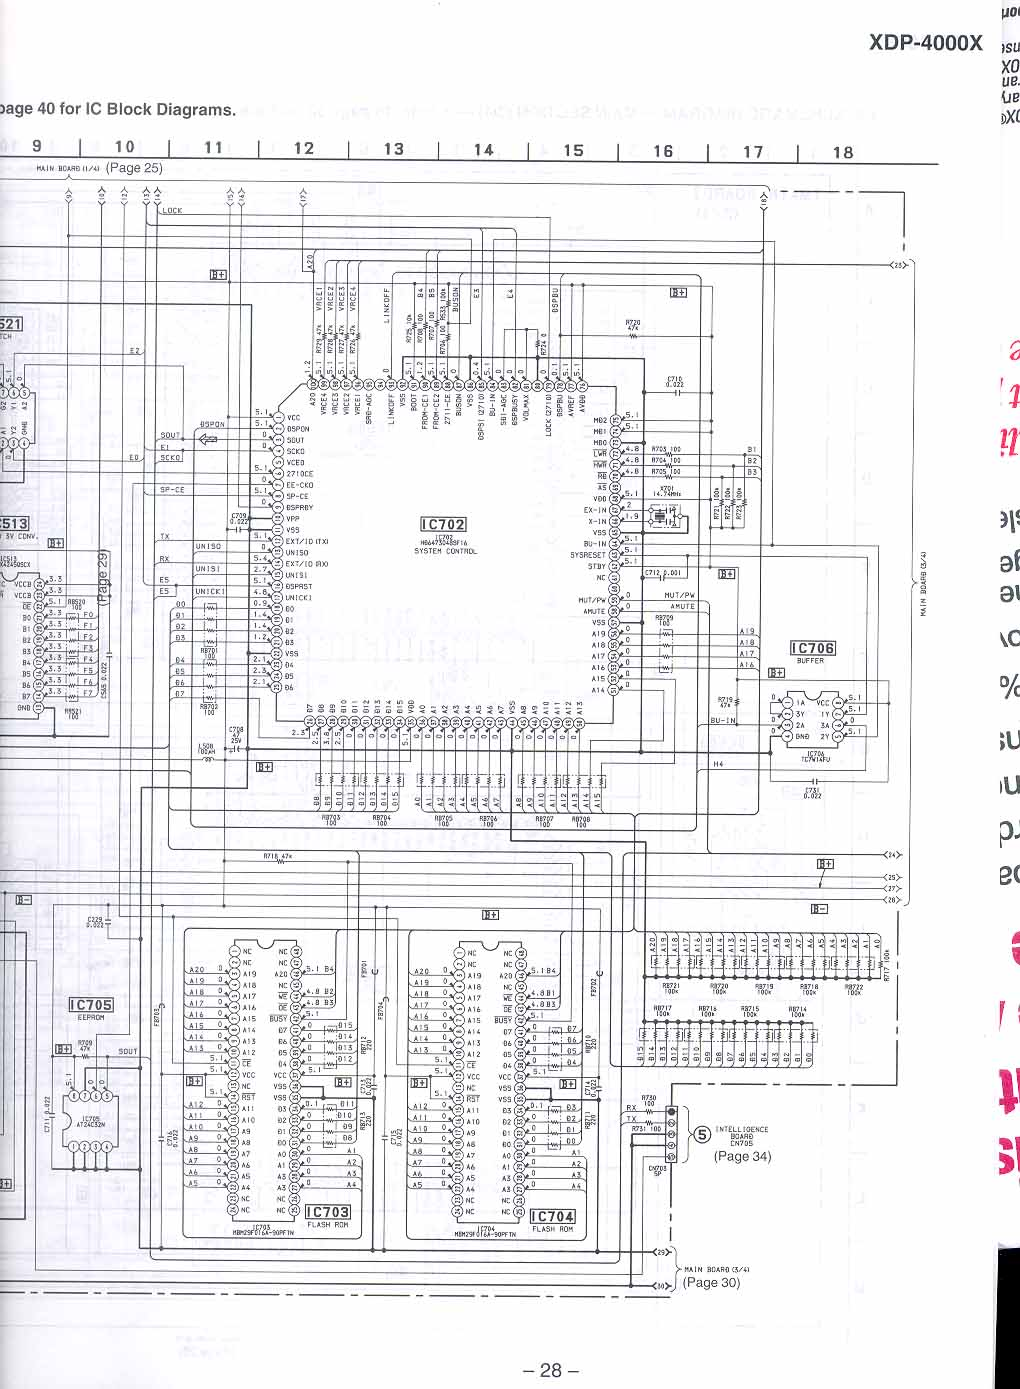 Rev1 Page28 4kcontrol control utility for the sony xdp 4000x digital sony cdx 4000x wiring diagram at virtualis.co